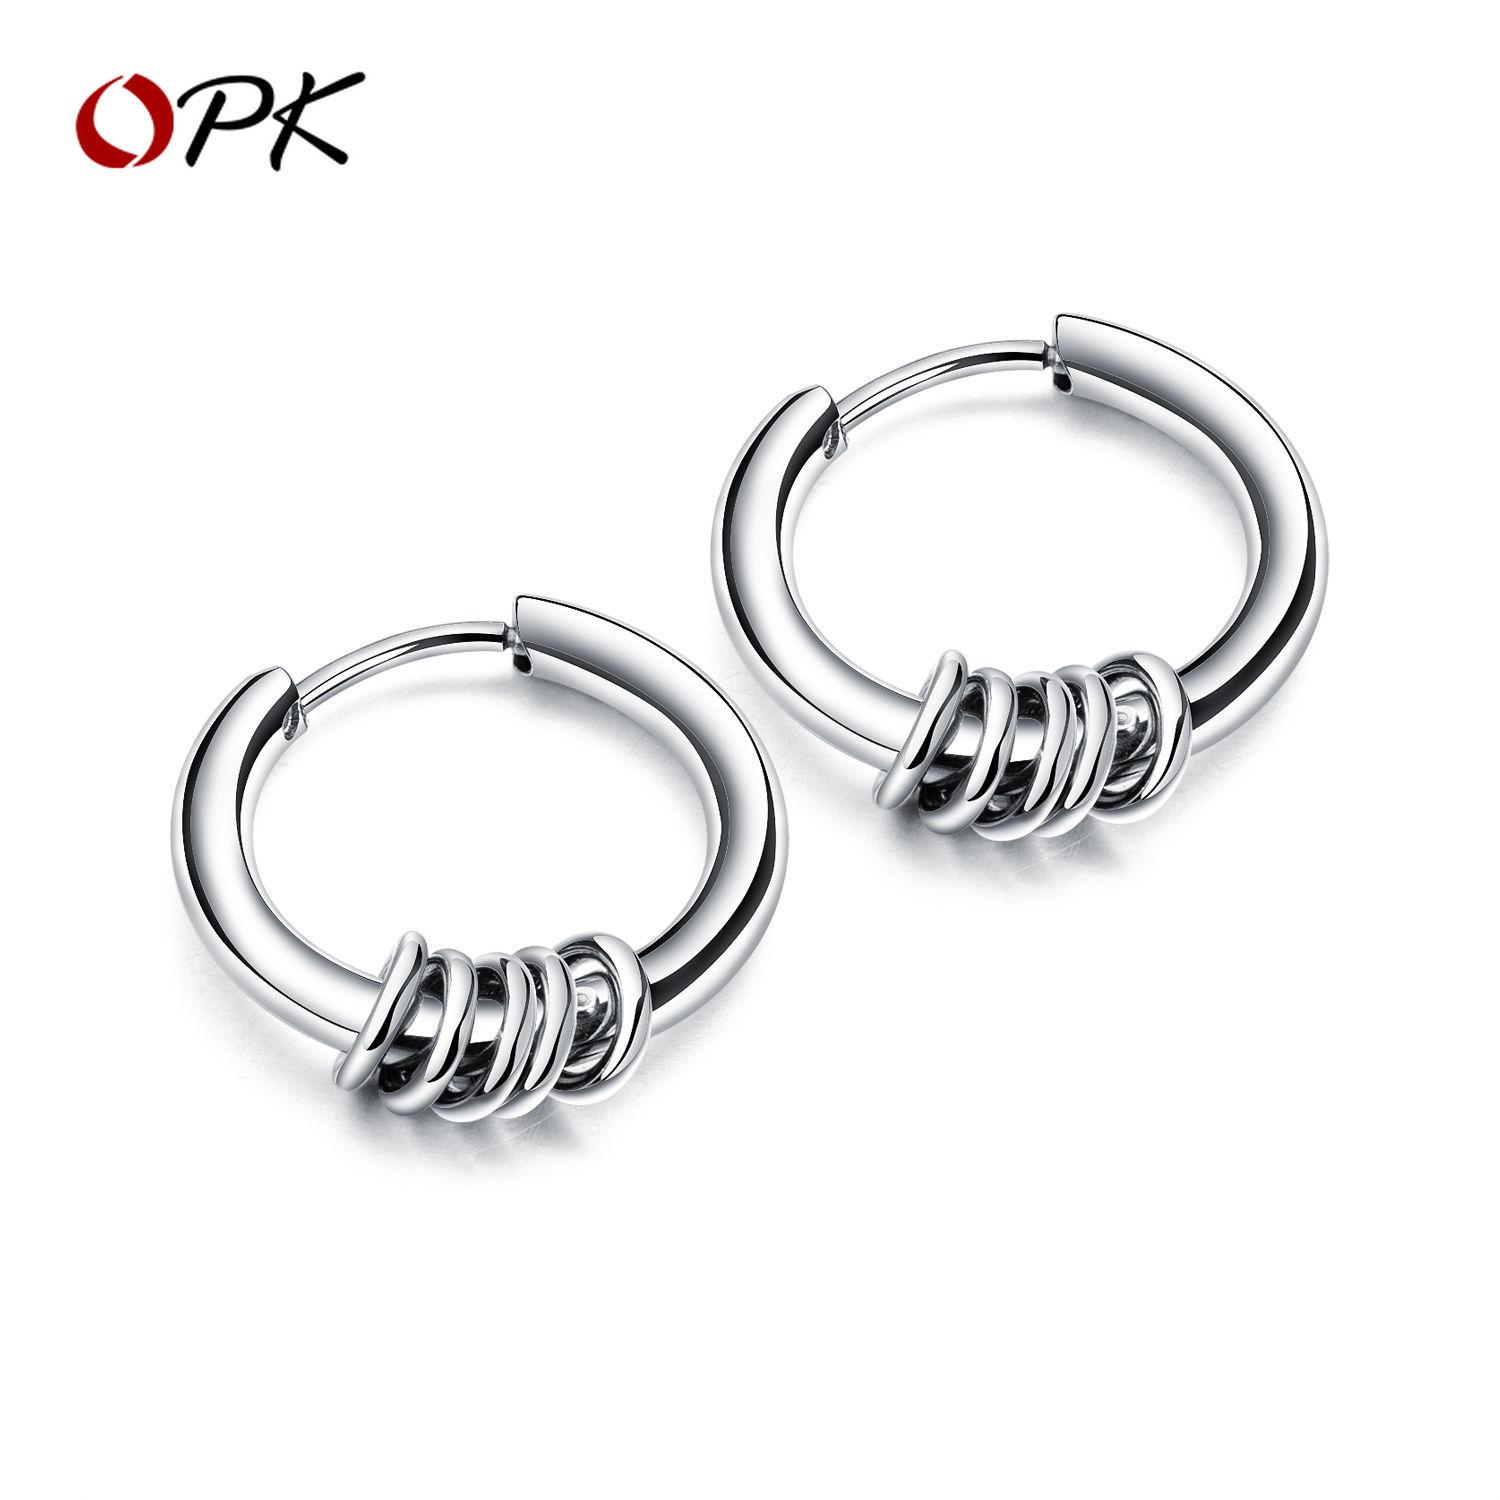 b6853d3665601 OPK men earrings Korean version of the same paragraph titanium steel  earrings stainless steel ear ring hipster accessories wild personality  circle ...